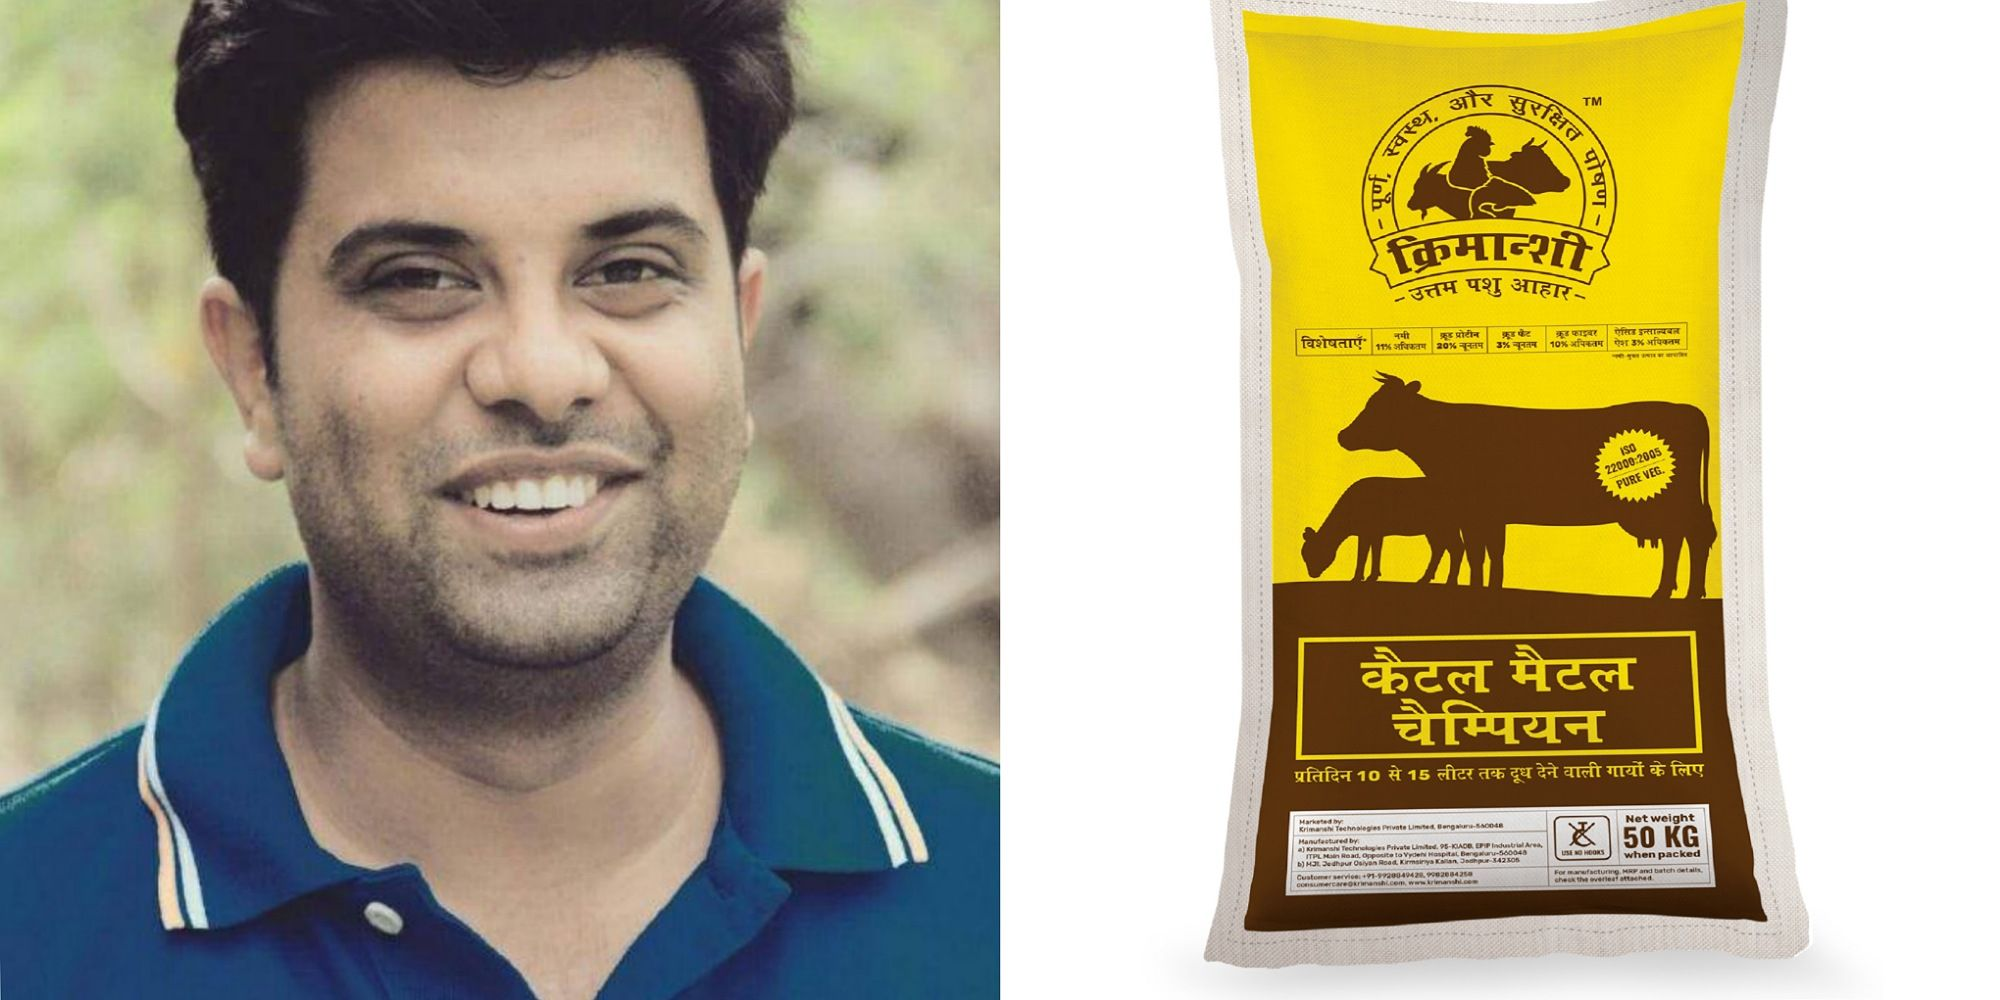 How Krimanshi is providing nutritious food to cattle by reutilizing the existing resources